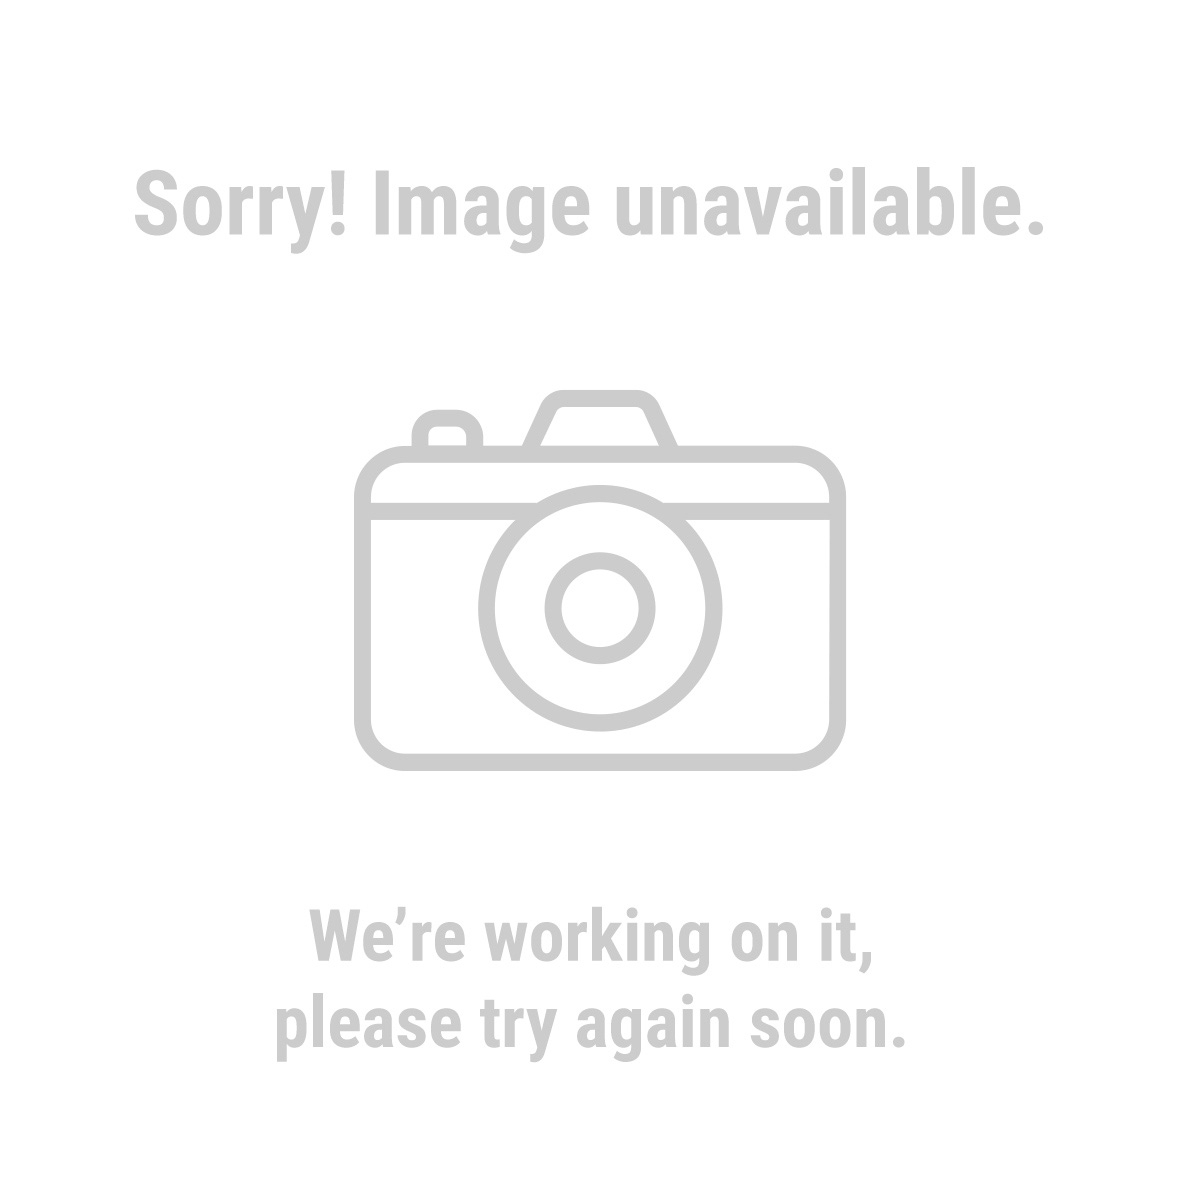 Central Machinery® 45707 Universal Cutter/Grinder